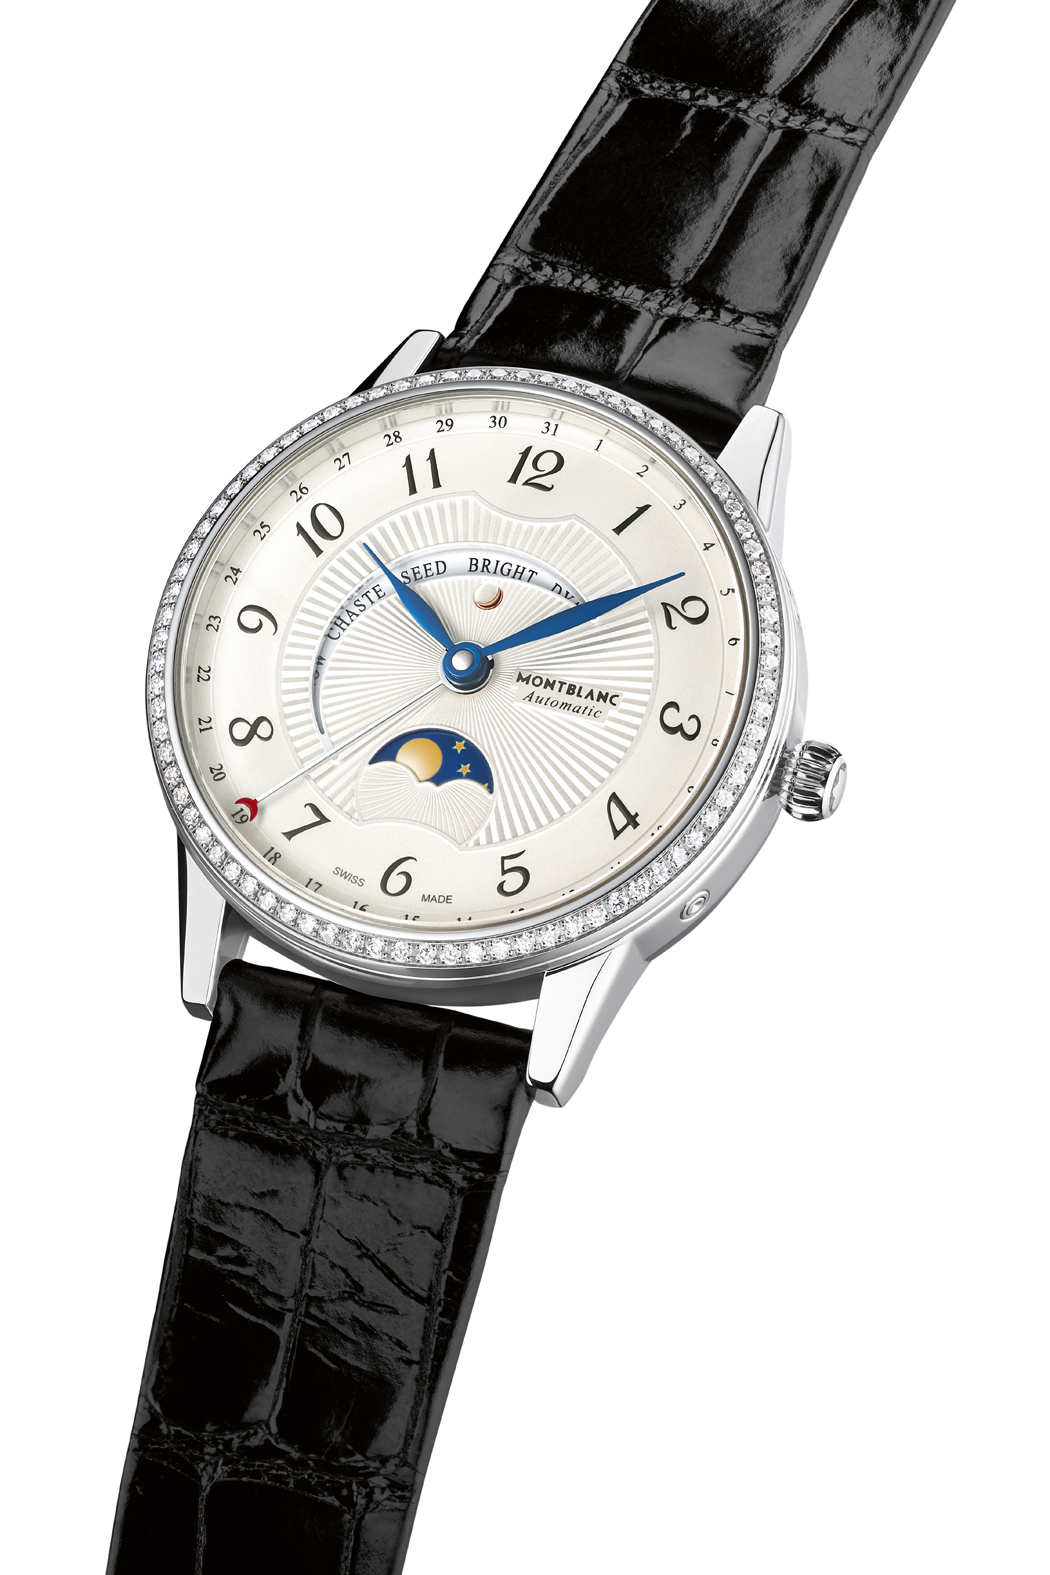 Take A Look At The Montblanc Boheme Moongarden Replica Watch